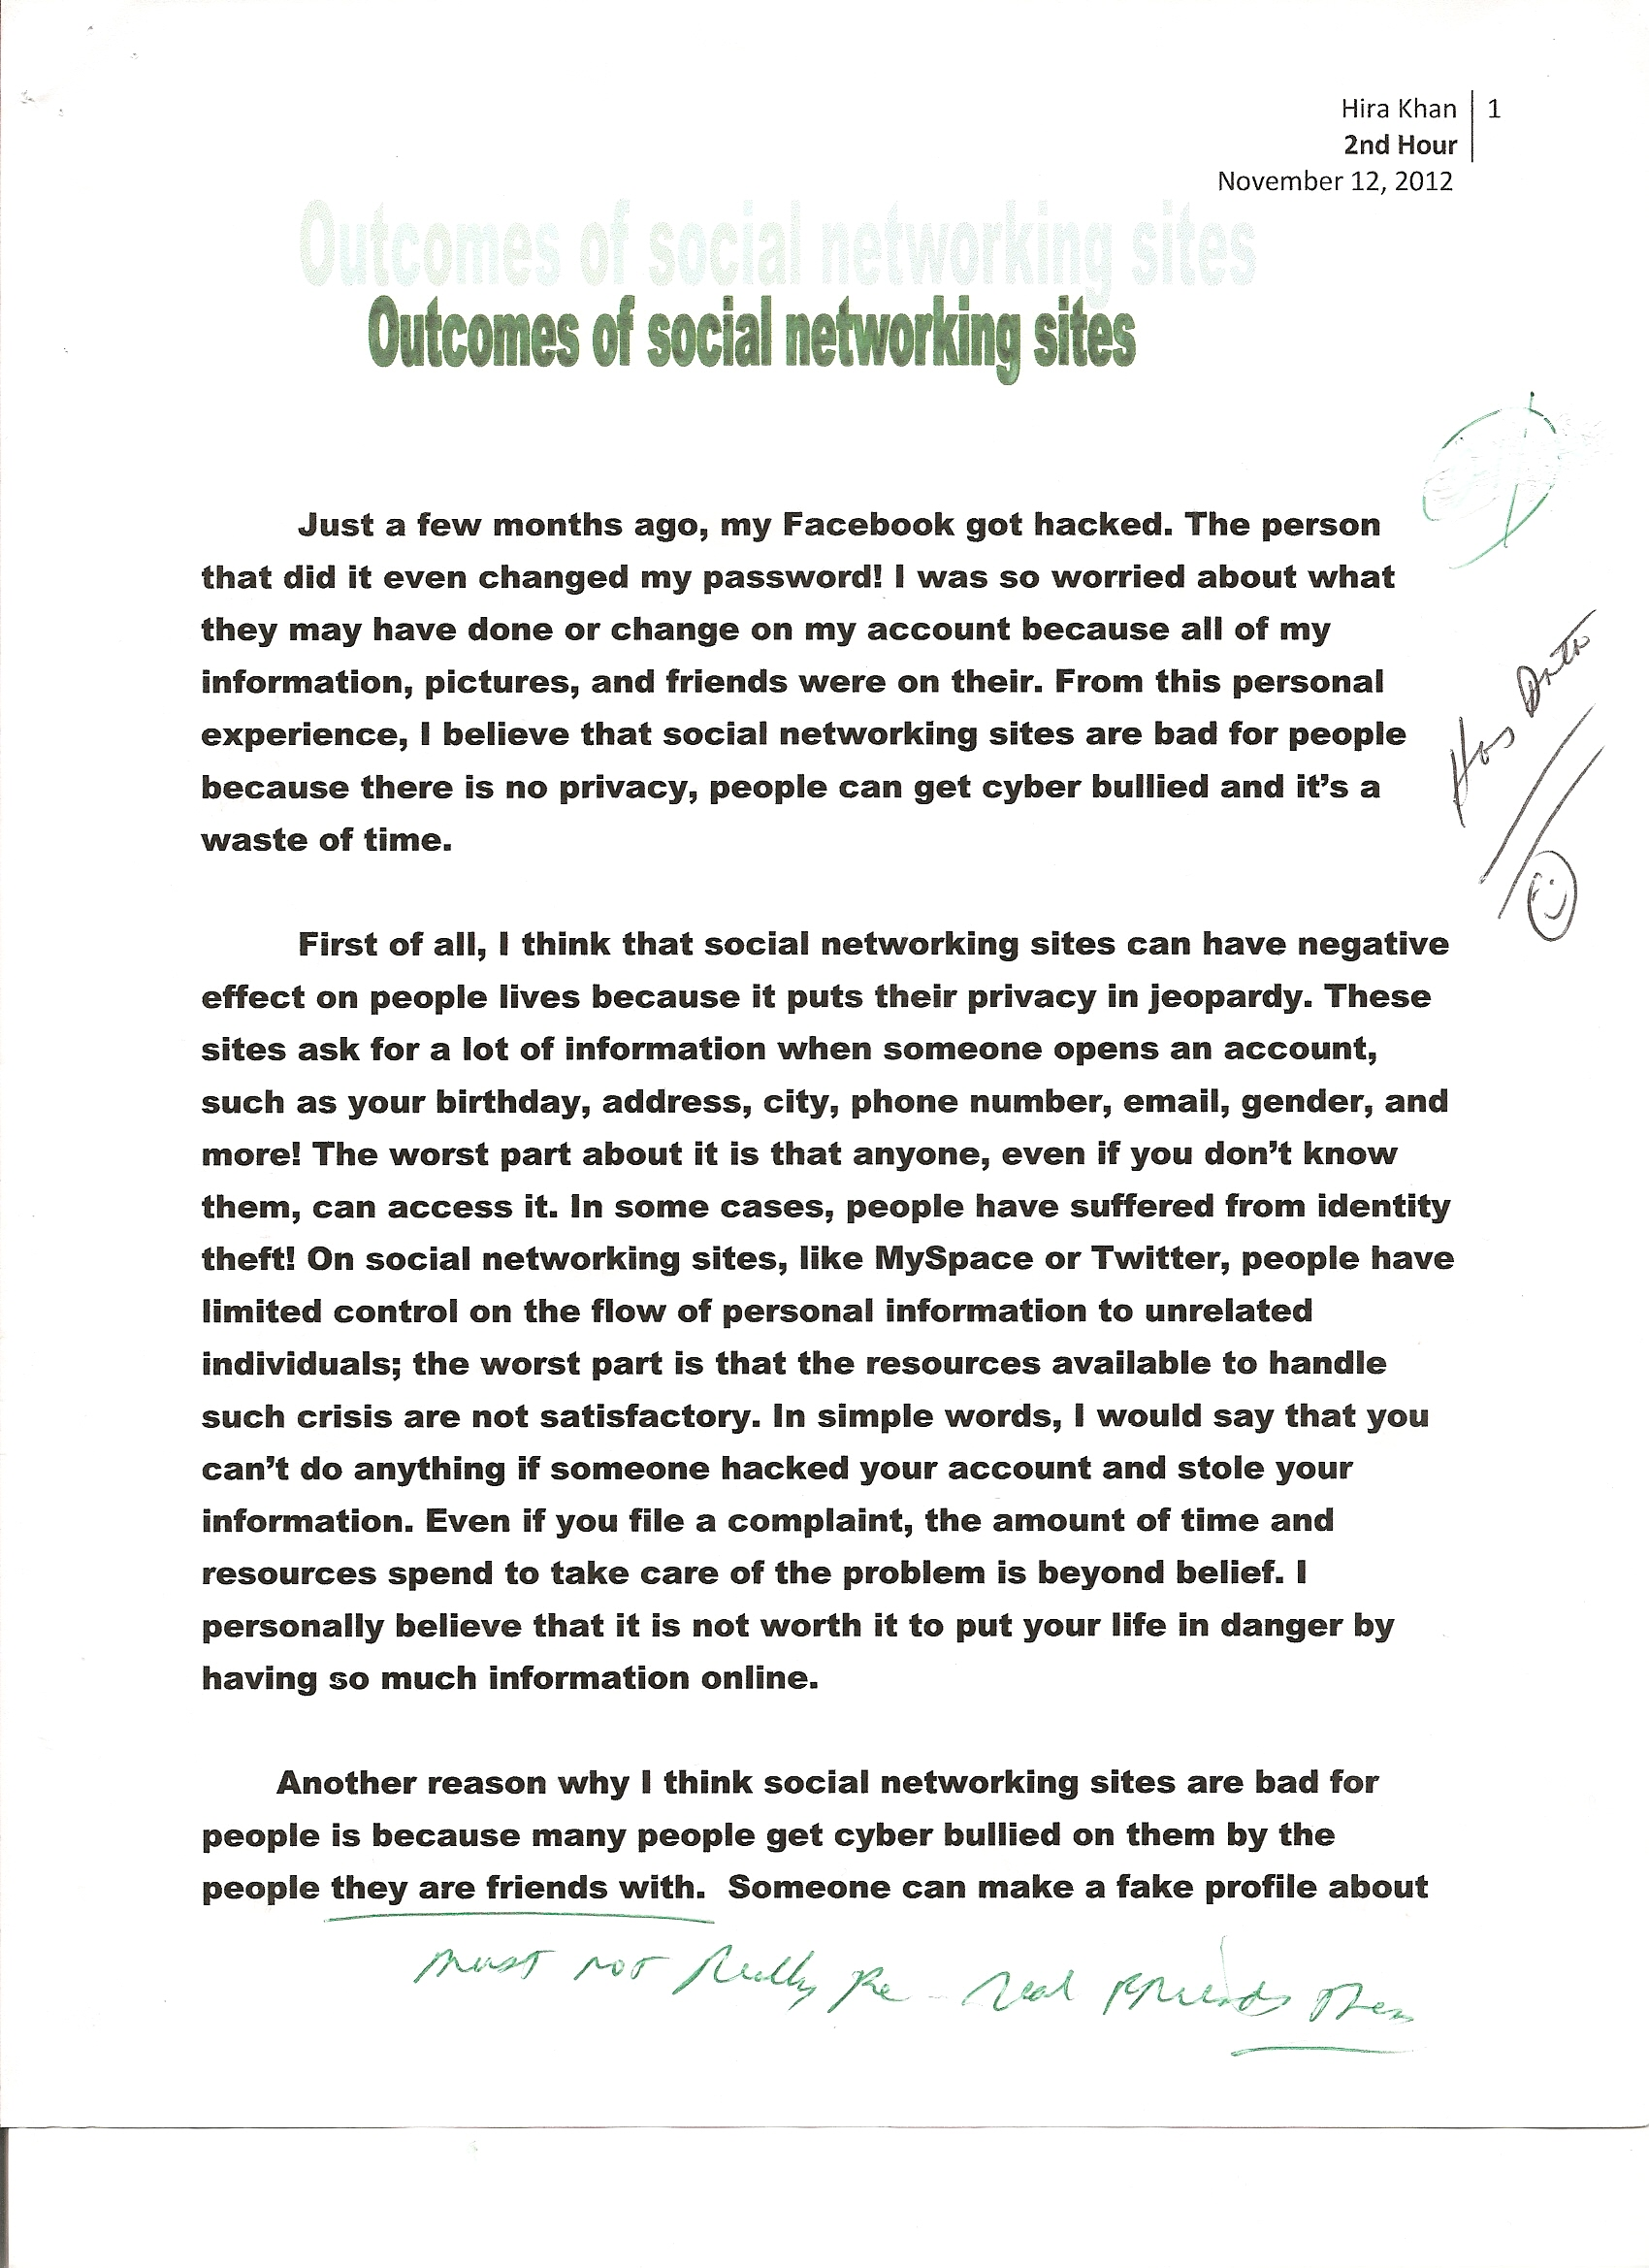 007 Essay Example Social Networking 1 Opinion About Fast Unbelievable Food Is A Good Alternative To Cooking For Yourself An British Council Full